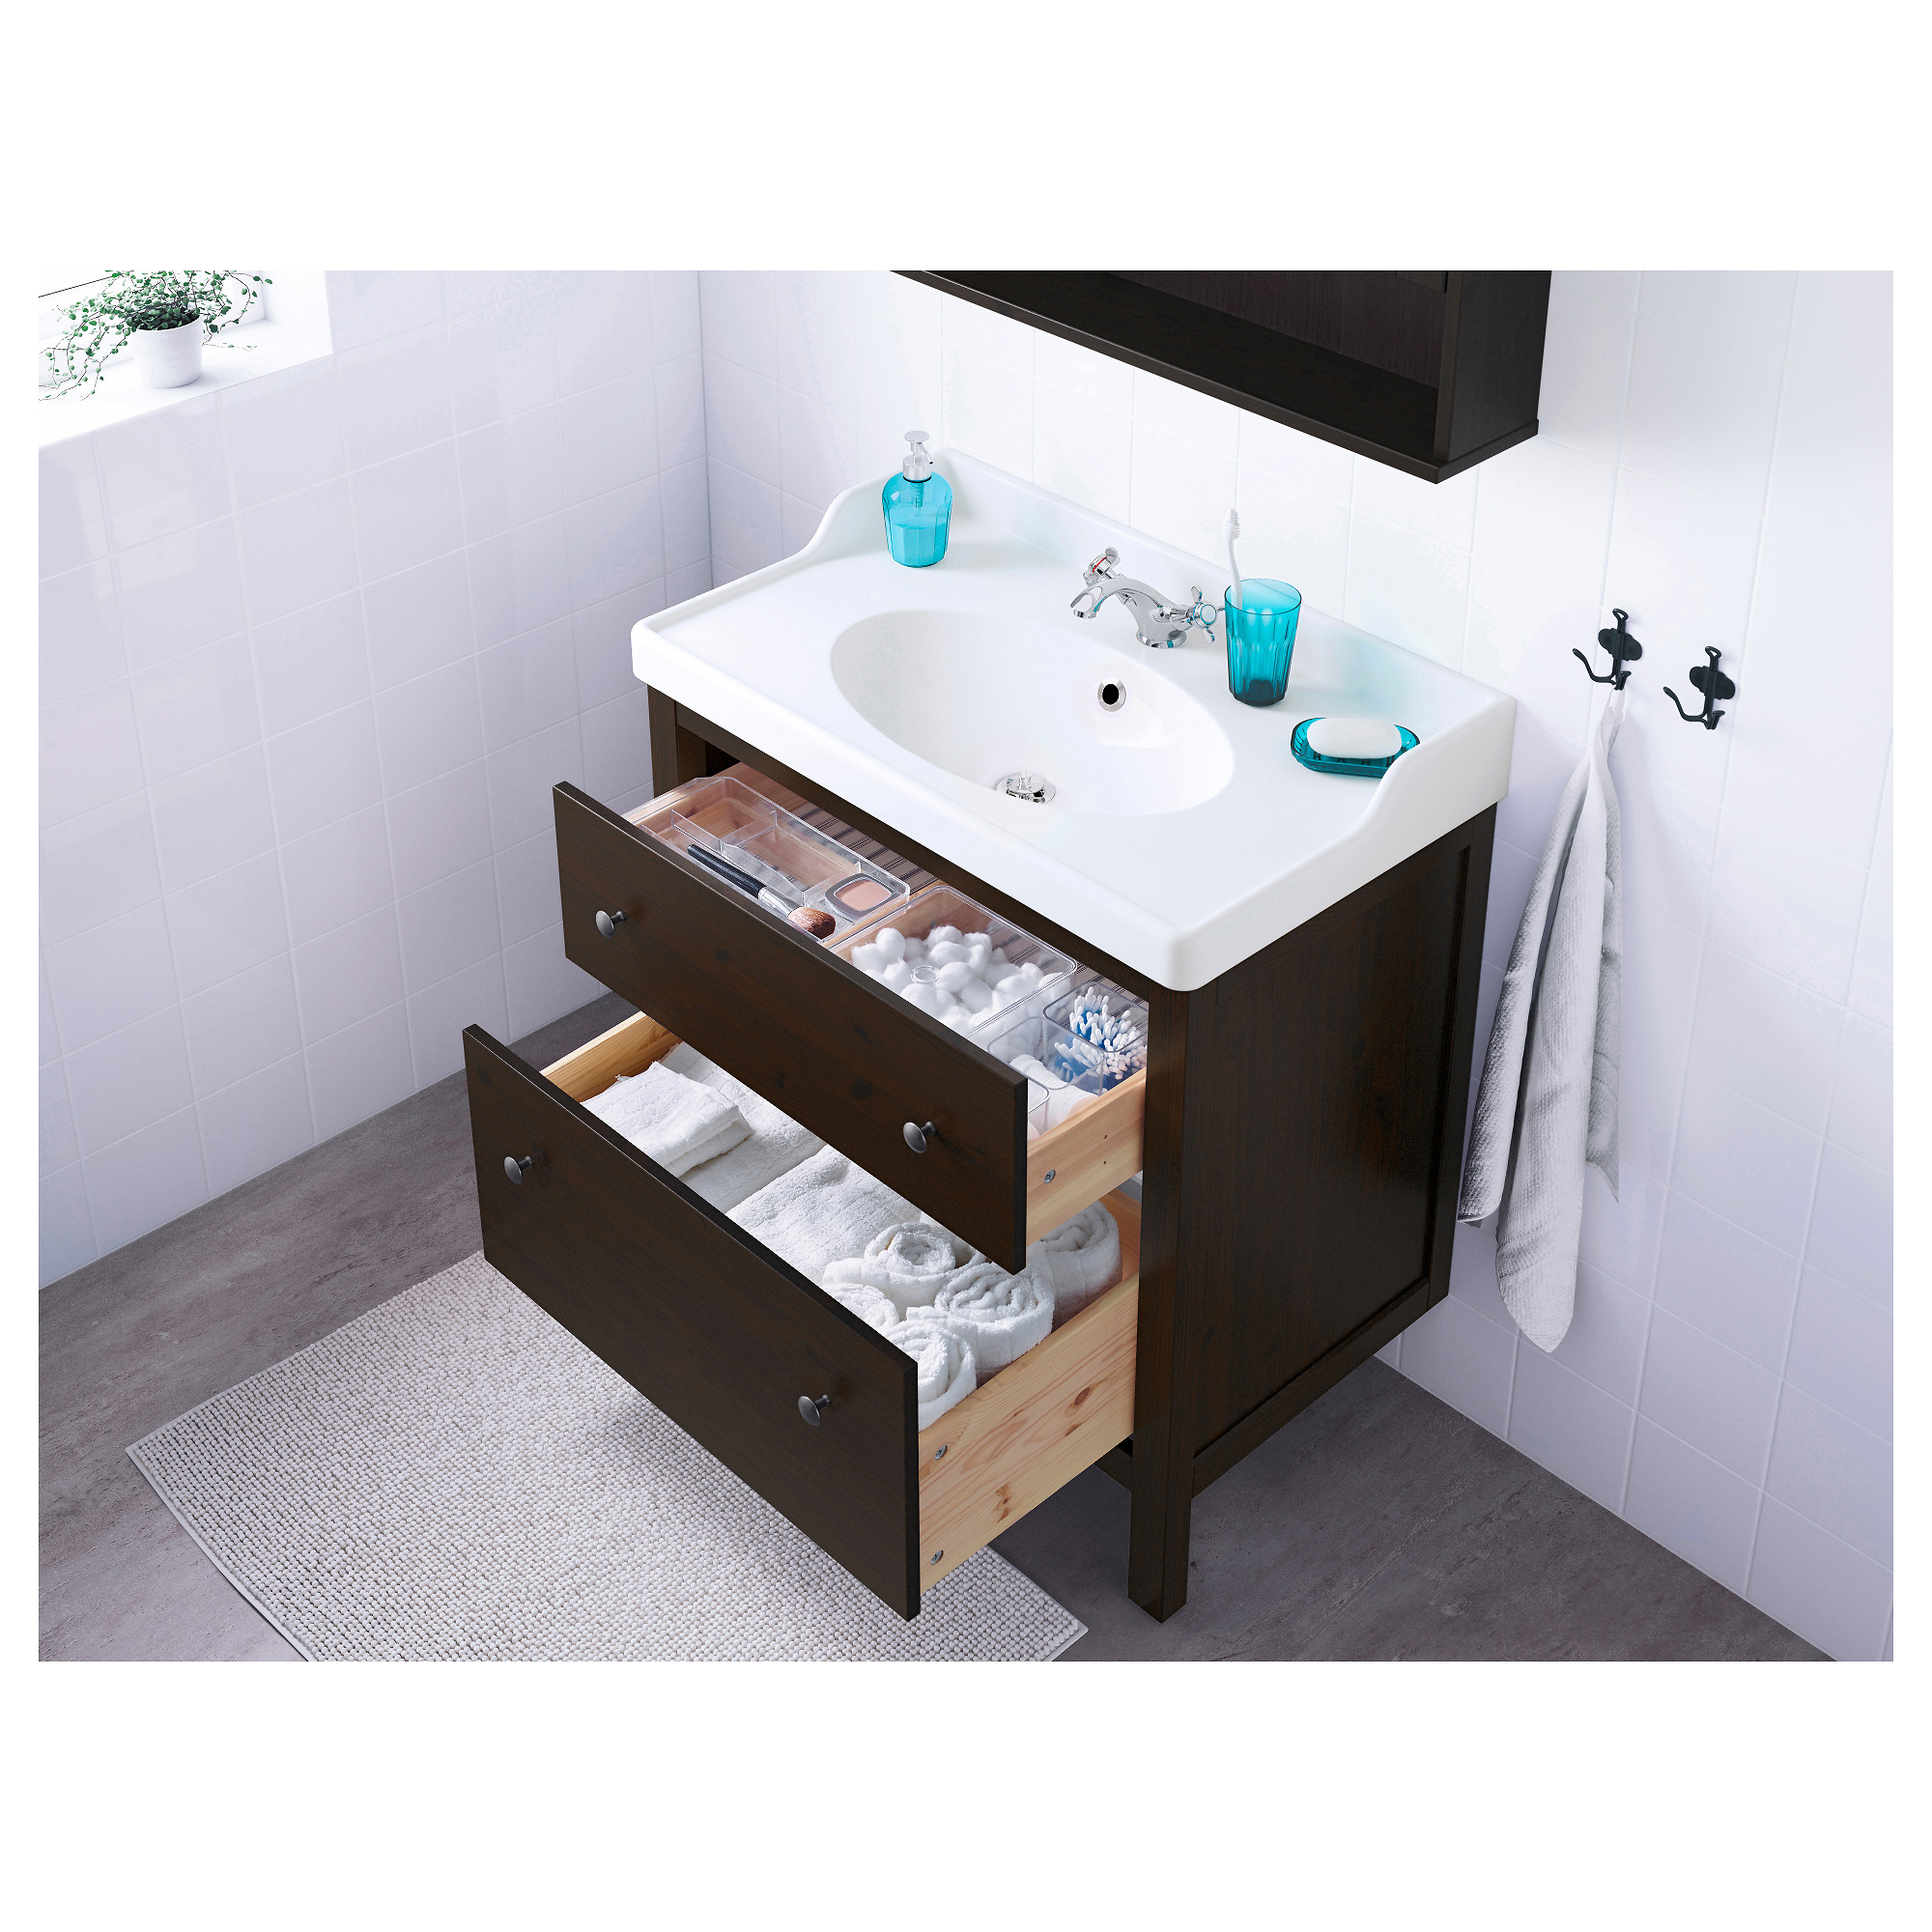 "HEMNES R""TTVIKEN Sink cabinet with 2 drawers white IKEA"